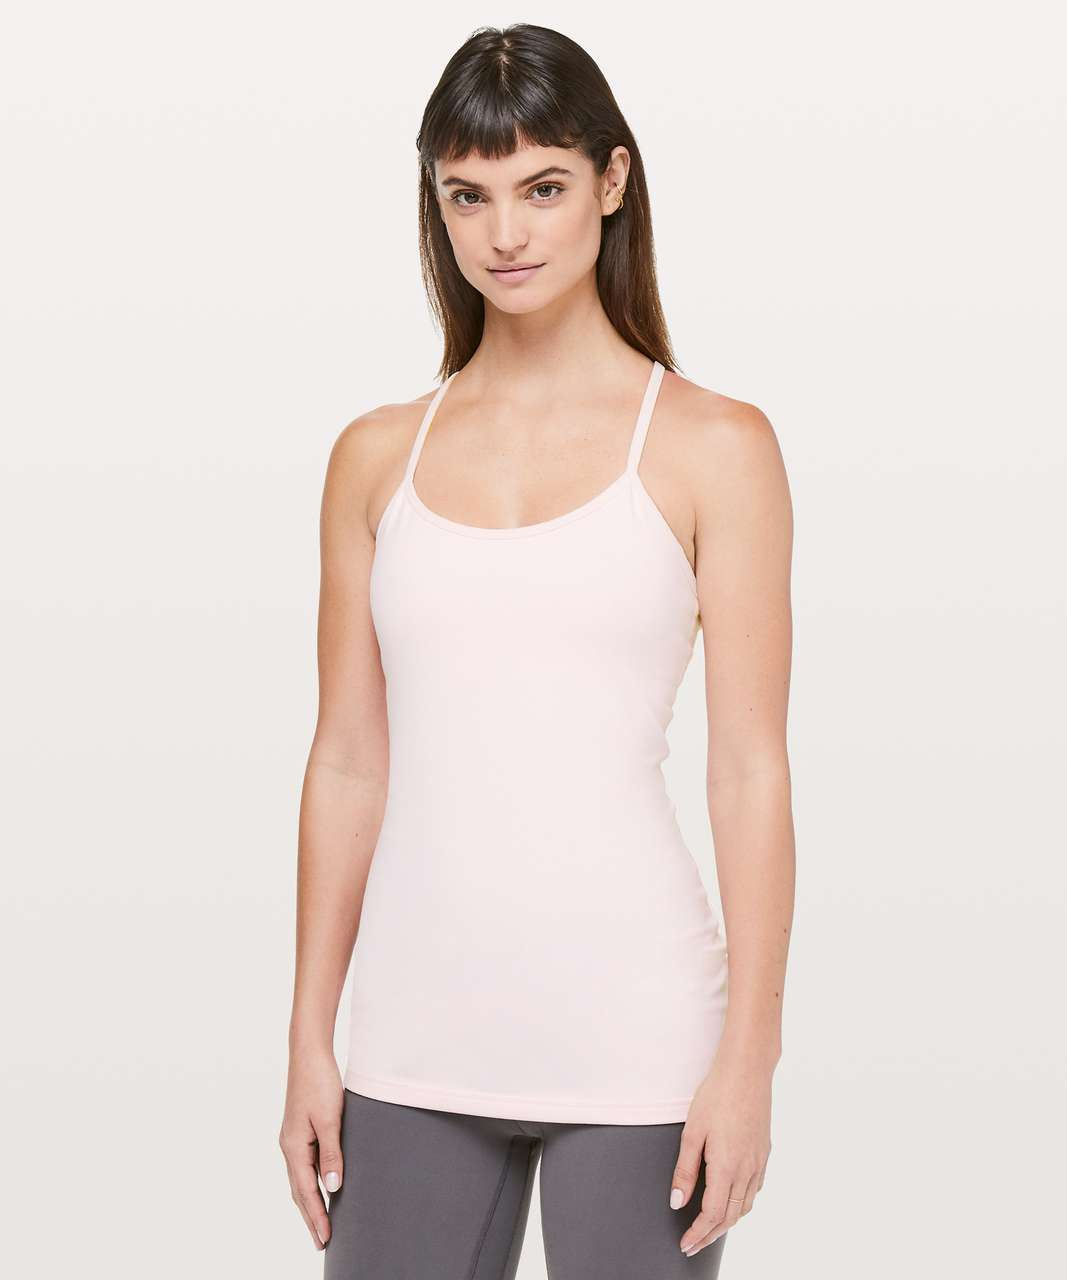 bba134125d80f Lululemon Power Y Tank  Luon - Blissful Pink - lulu fanatics